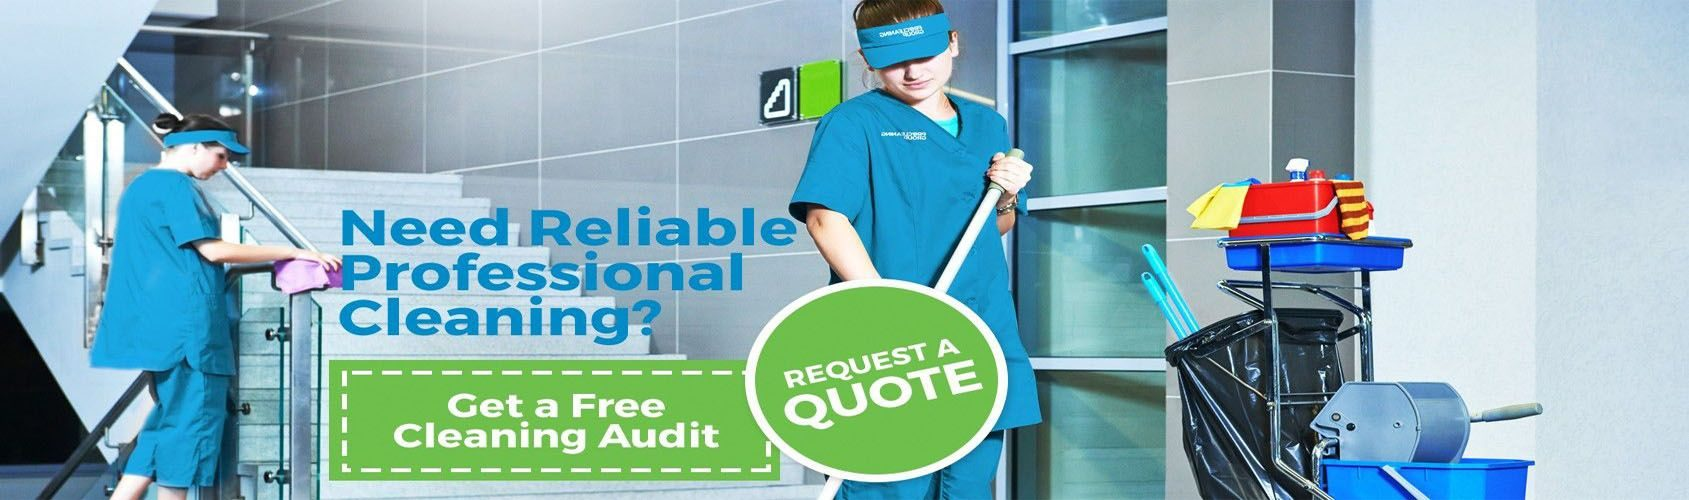 free cleaning commercial cleaning quote